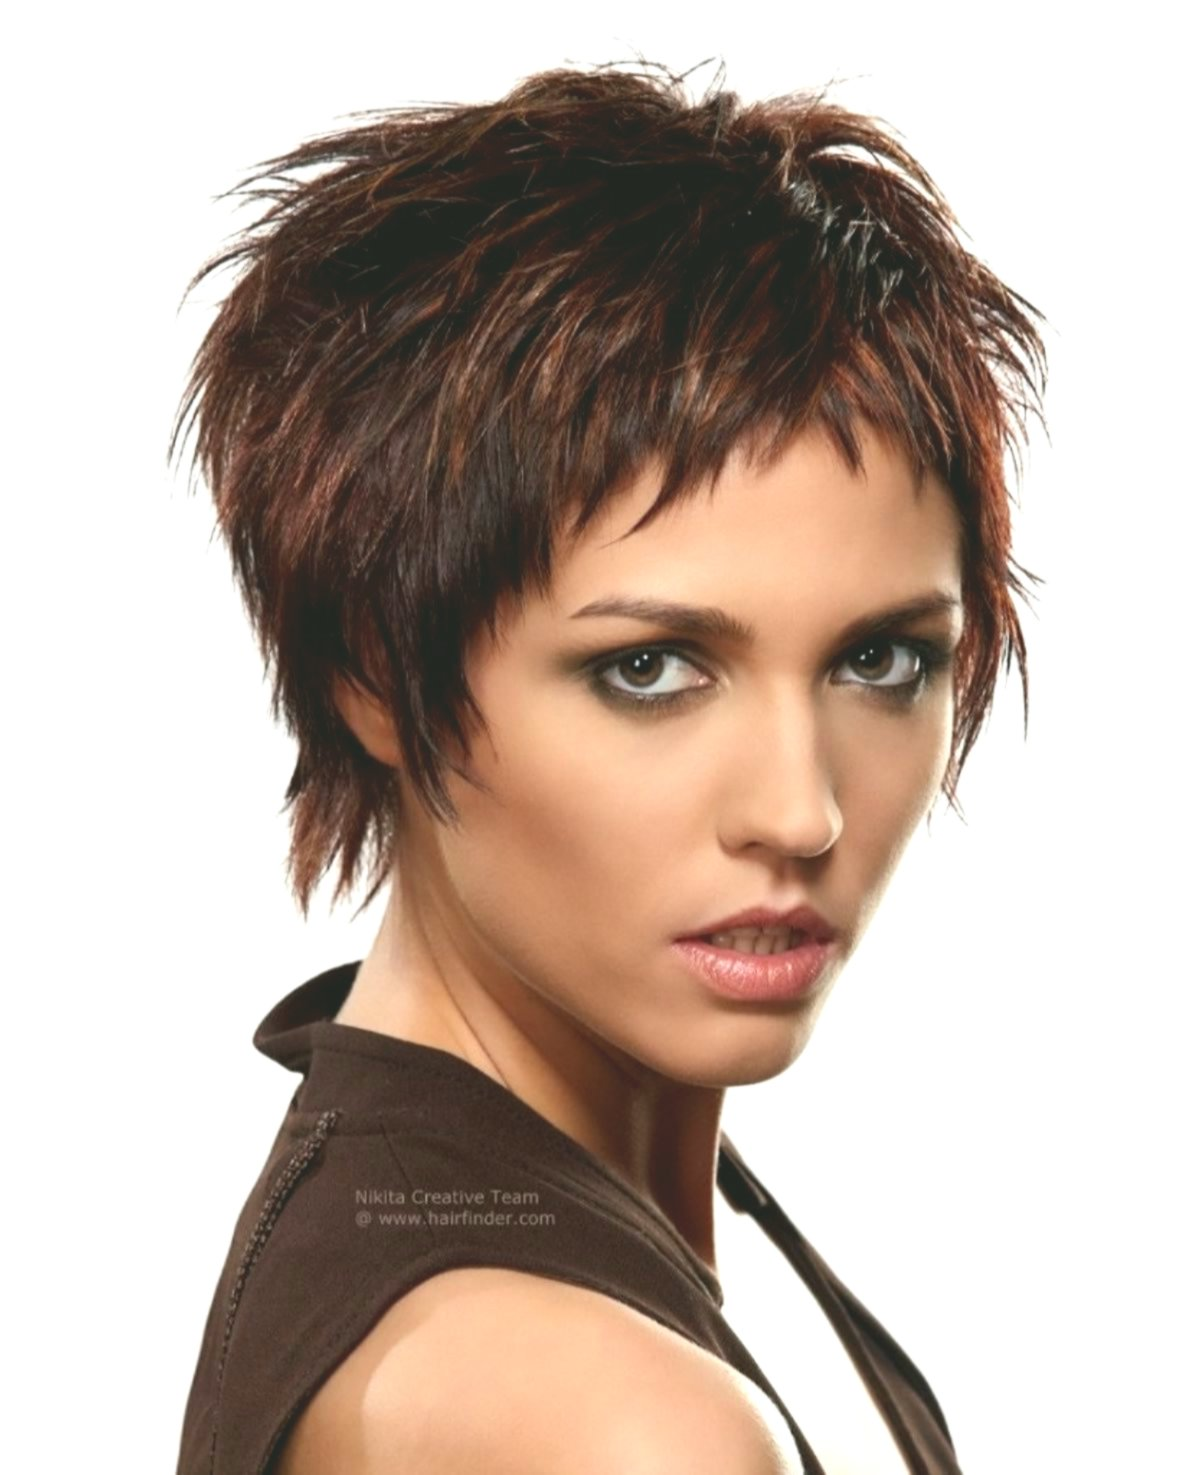 wonderfully stunning cool hairstyles décor-Lovely Cool Short Hairstyles Wall